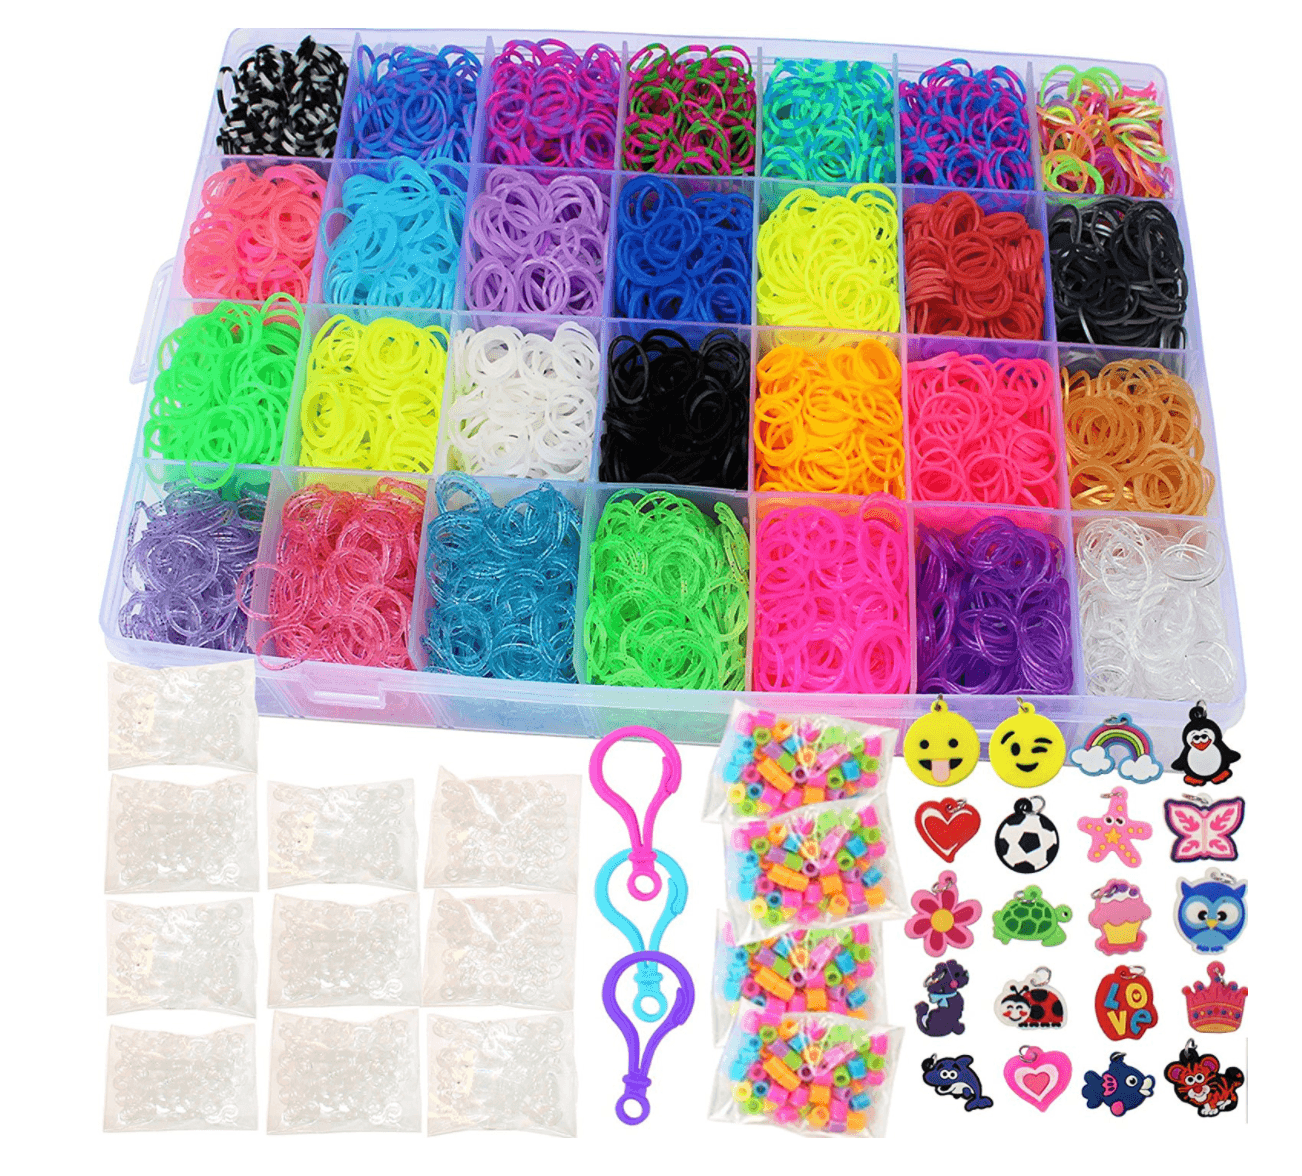 Rainbow loom ~ Gift Ideas for Girls